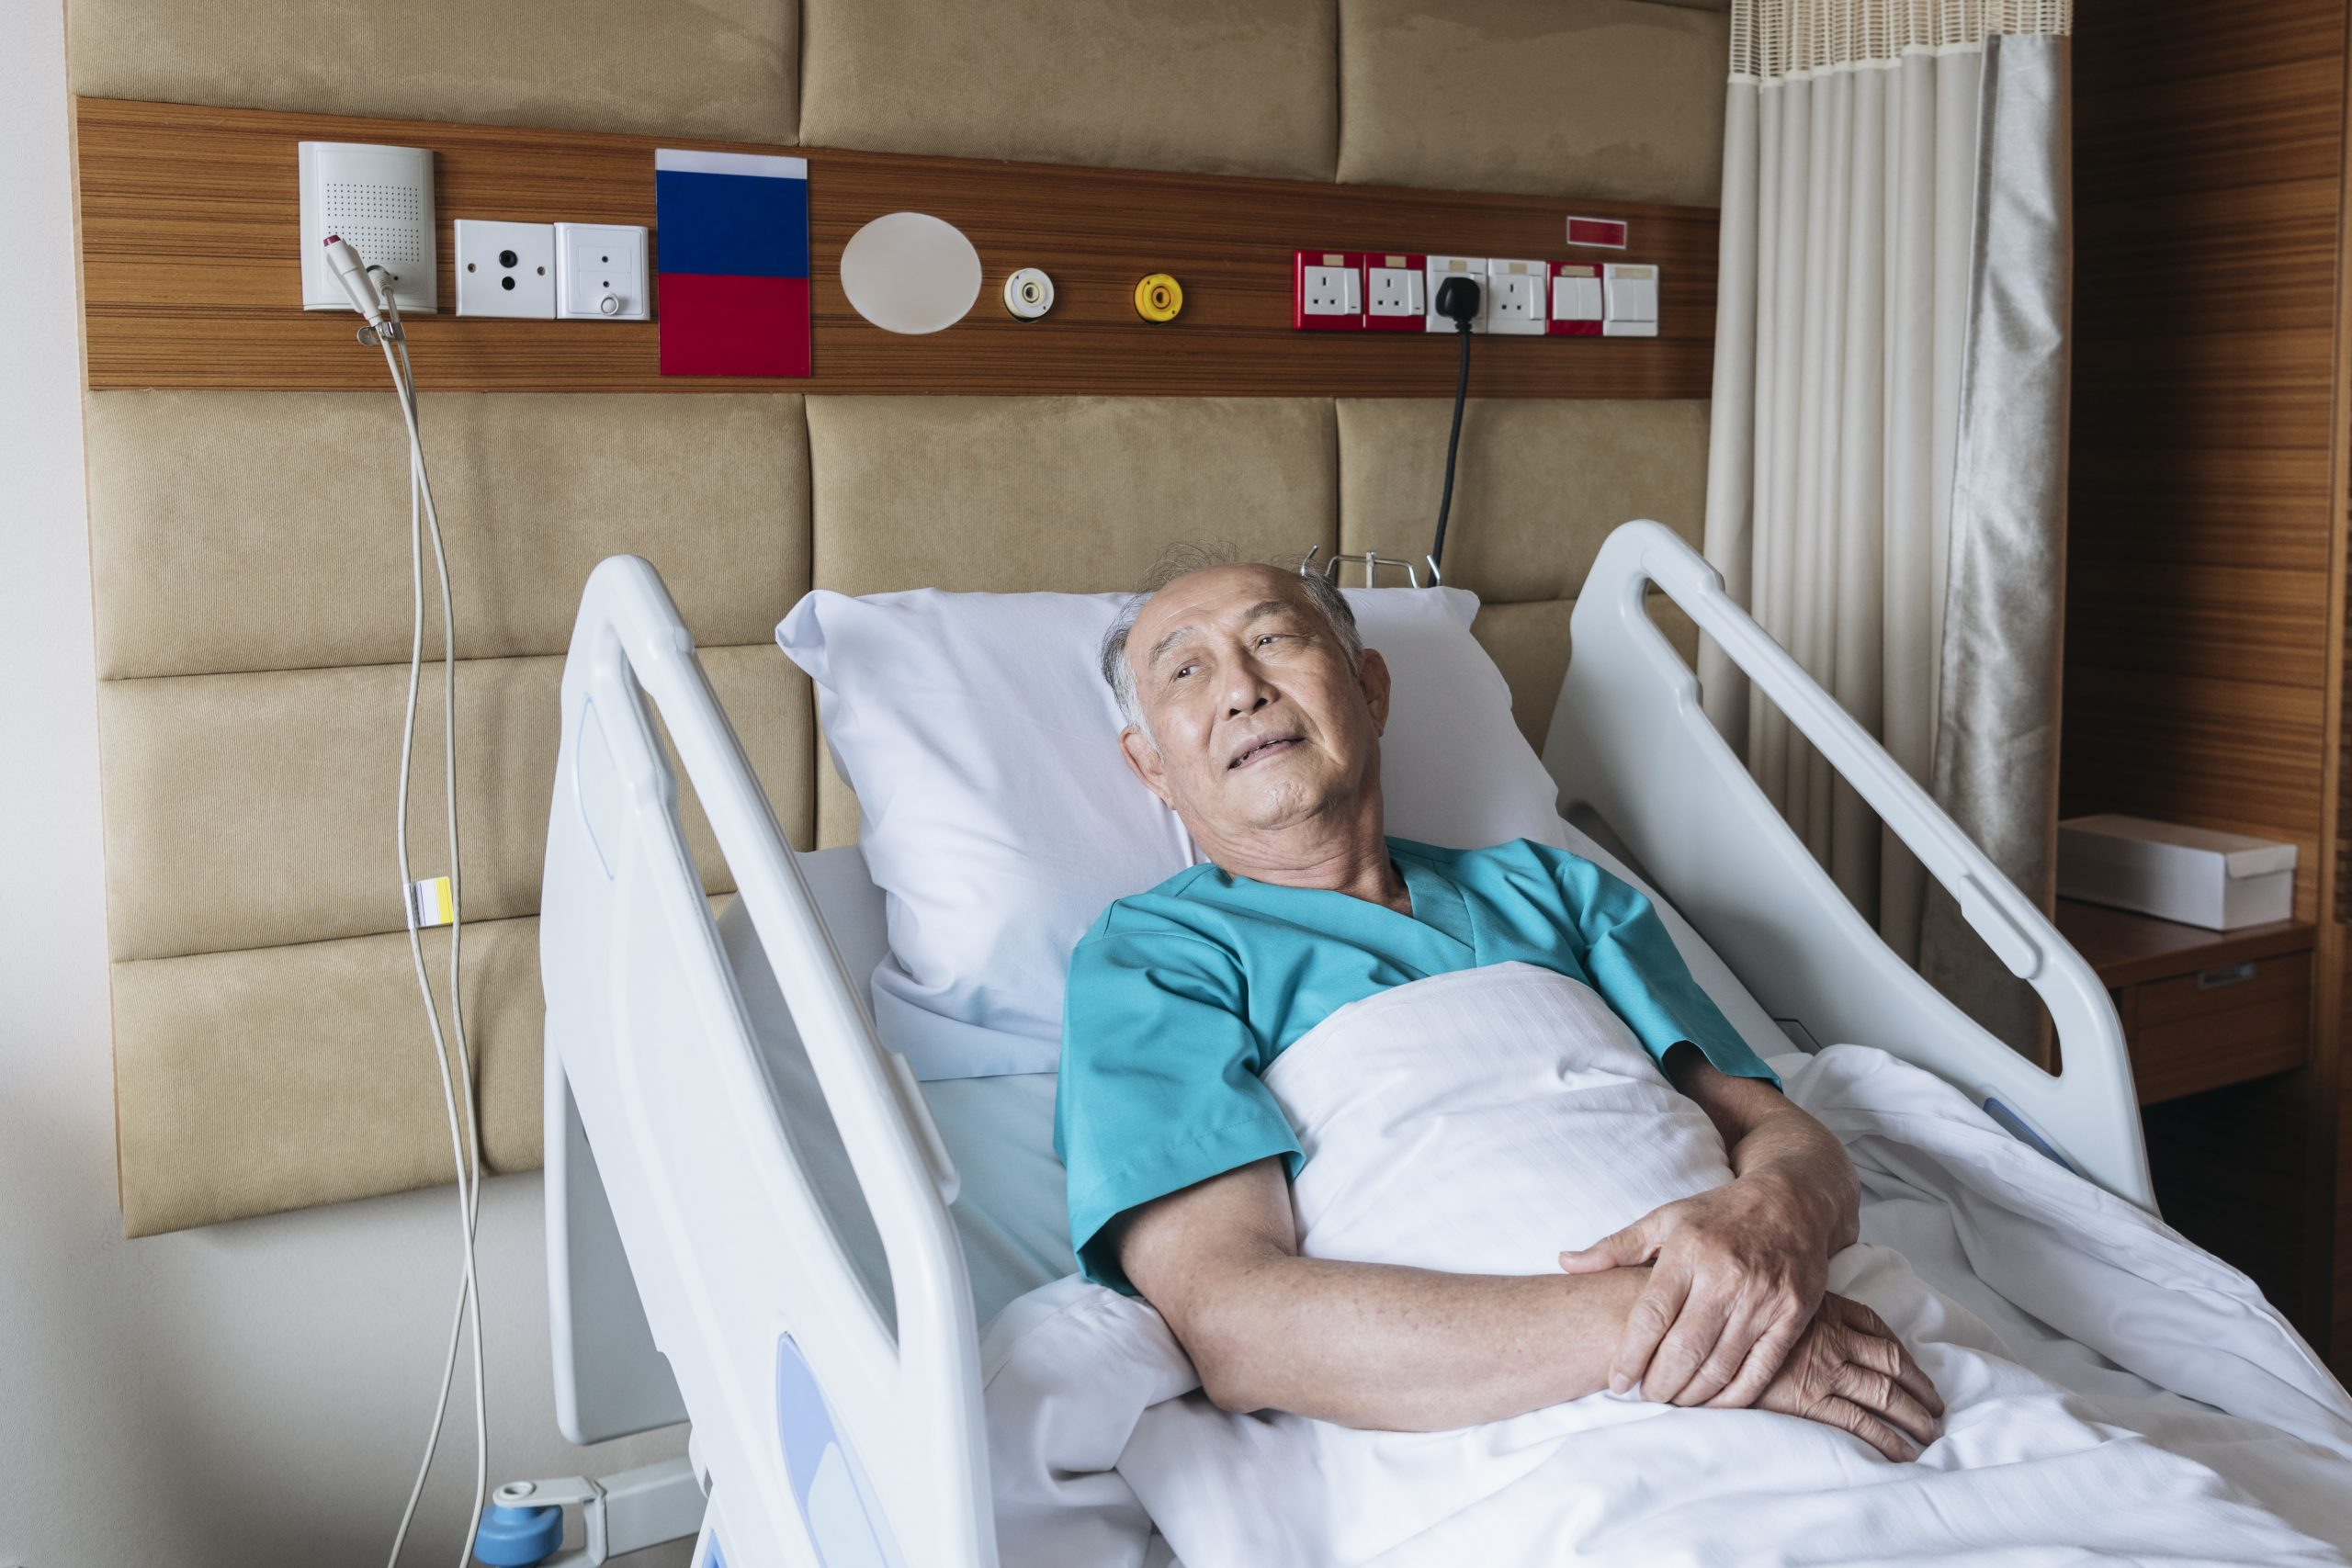 Older Asian man lying in hospital bed looking out the window